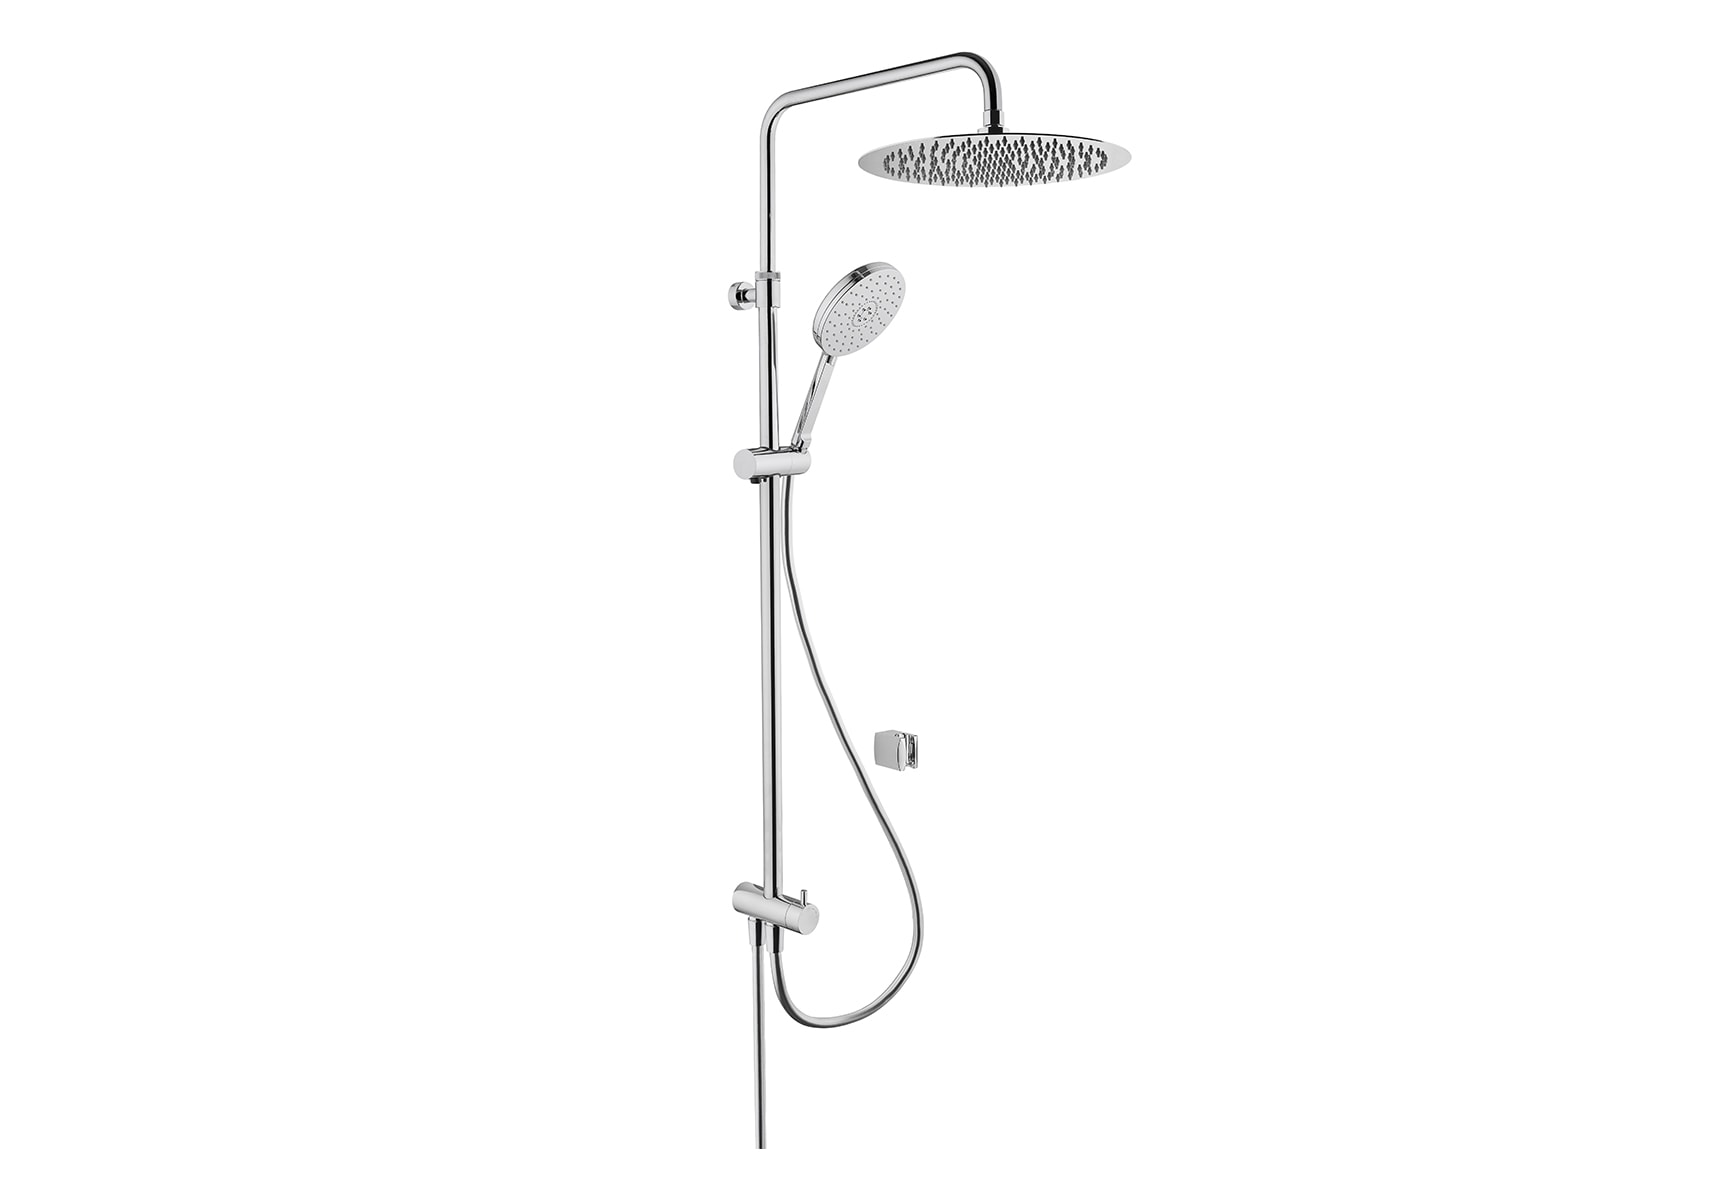 Lite LC Shower Column, Chrome